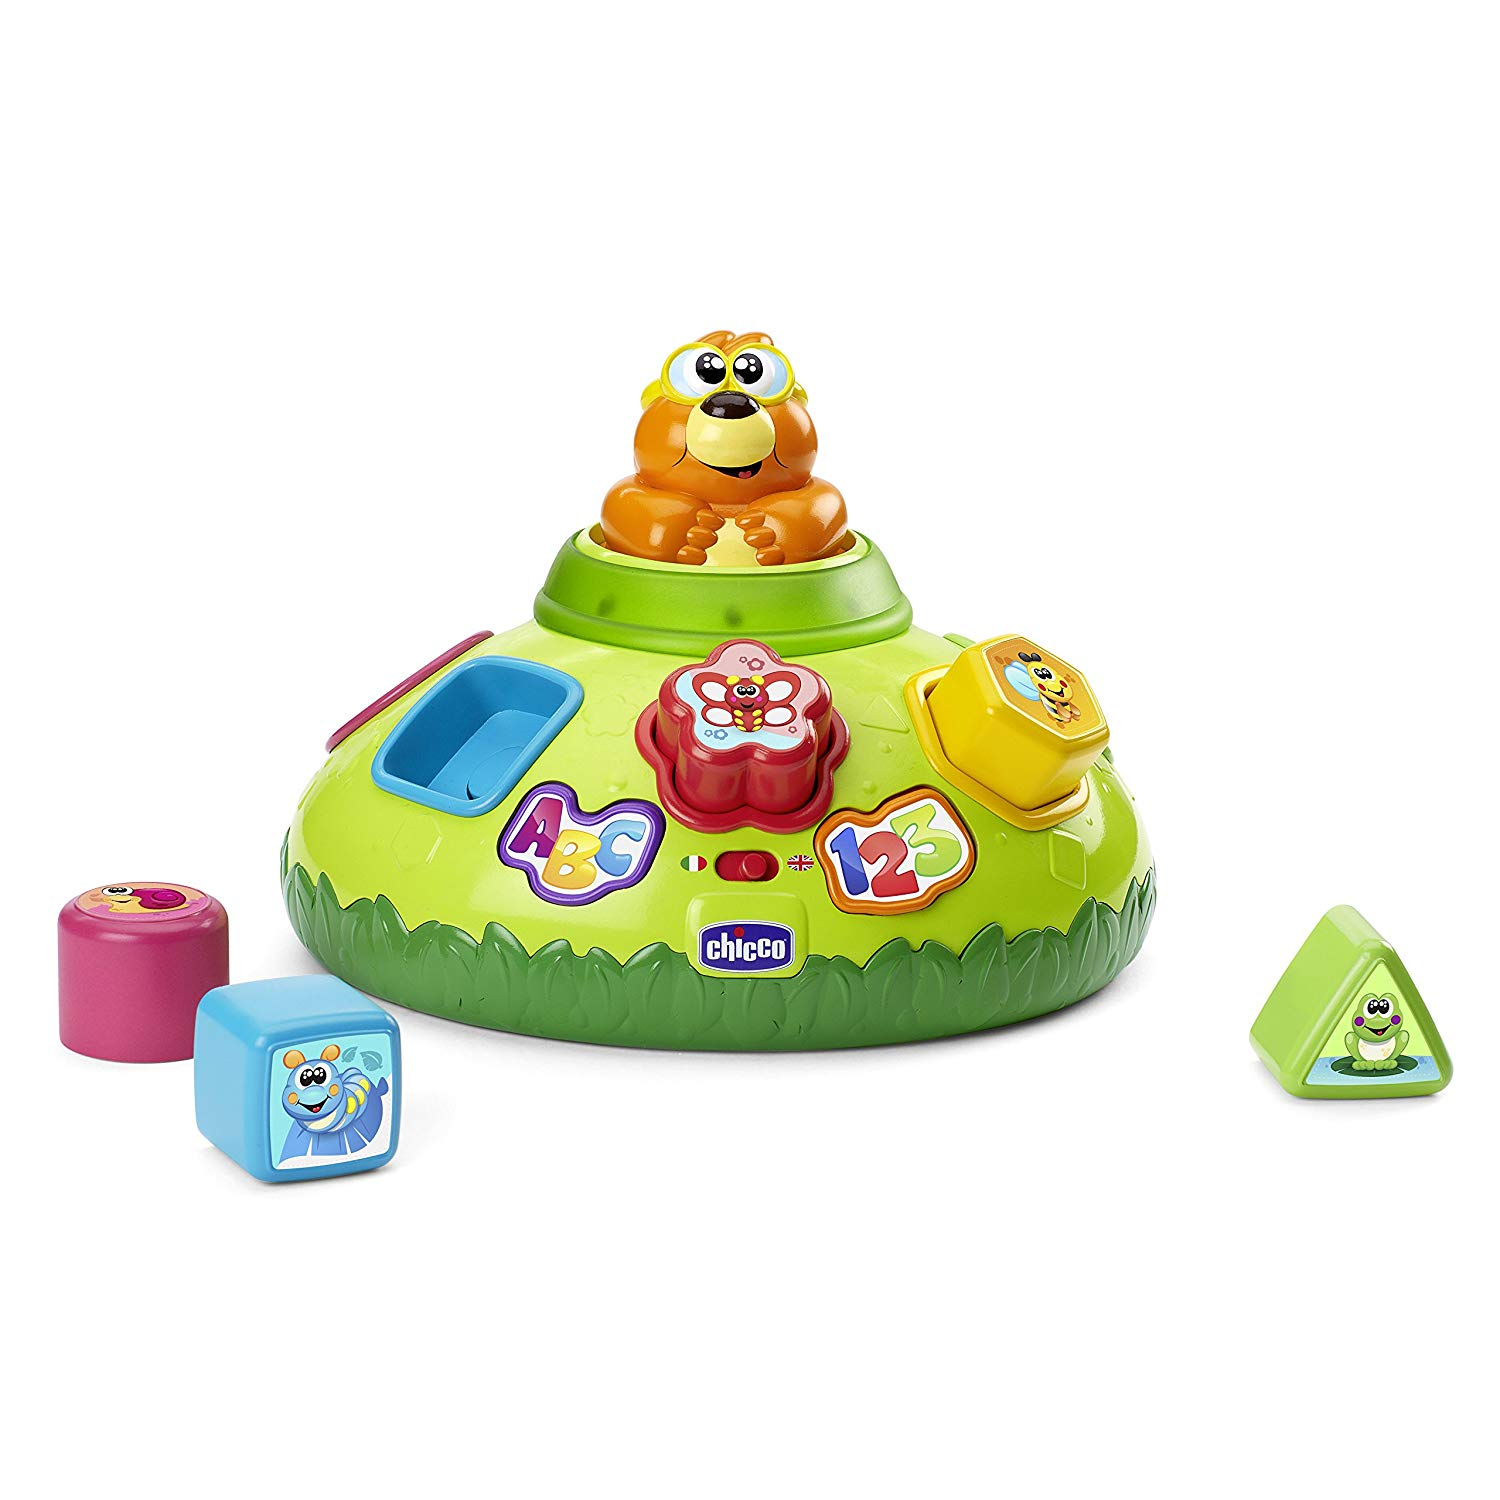 Chicco 00007710000000 Children's Educational Game – Educational Games (Multicolour, Boy, Boy/Girl, 3 Years (s), English, Italian, Buttons, Lever)